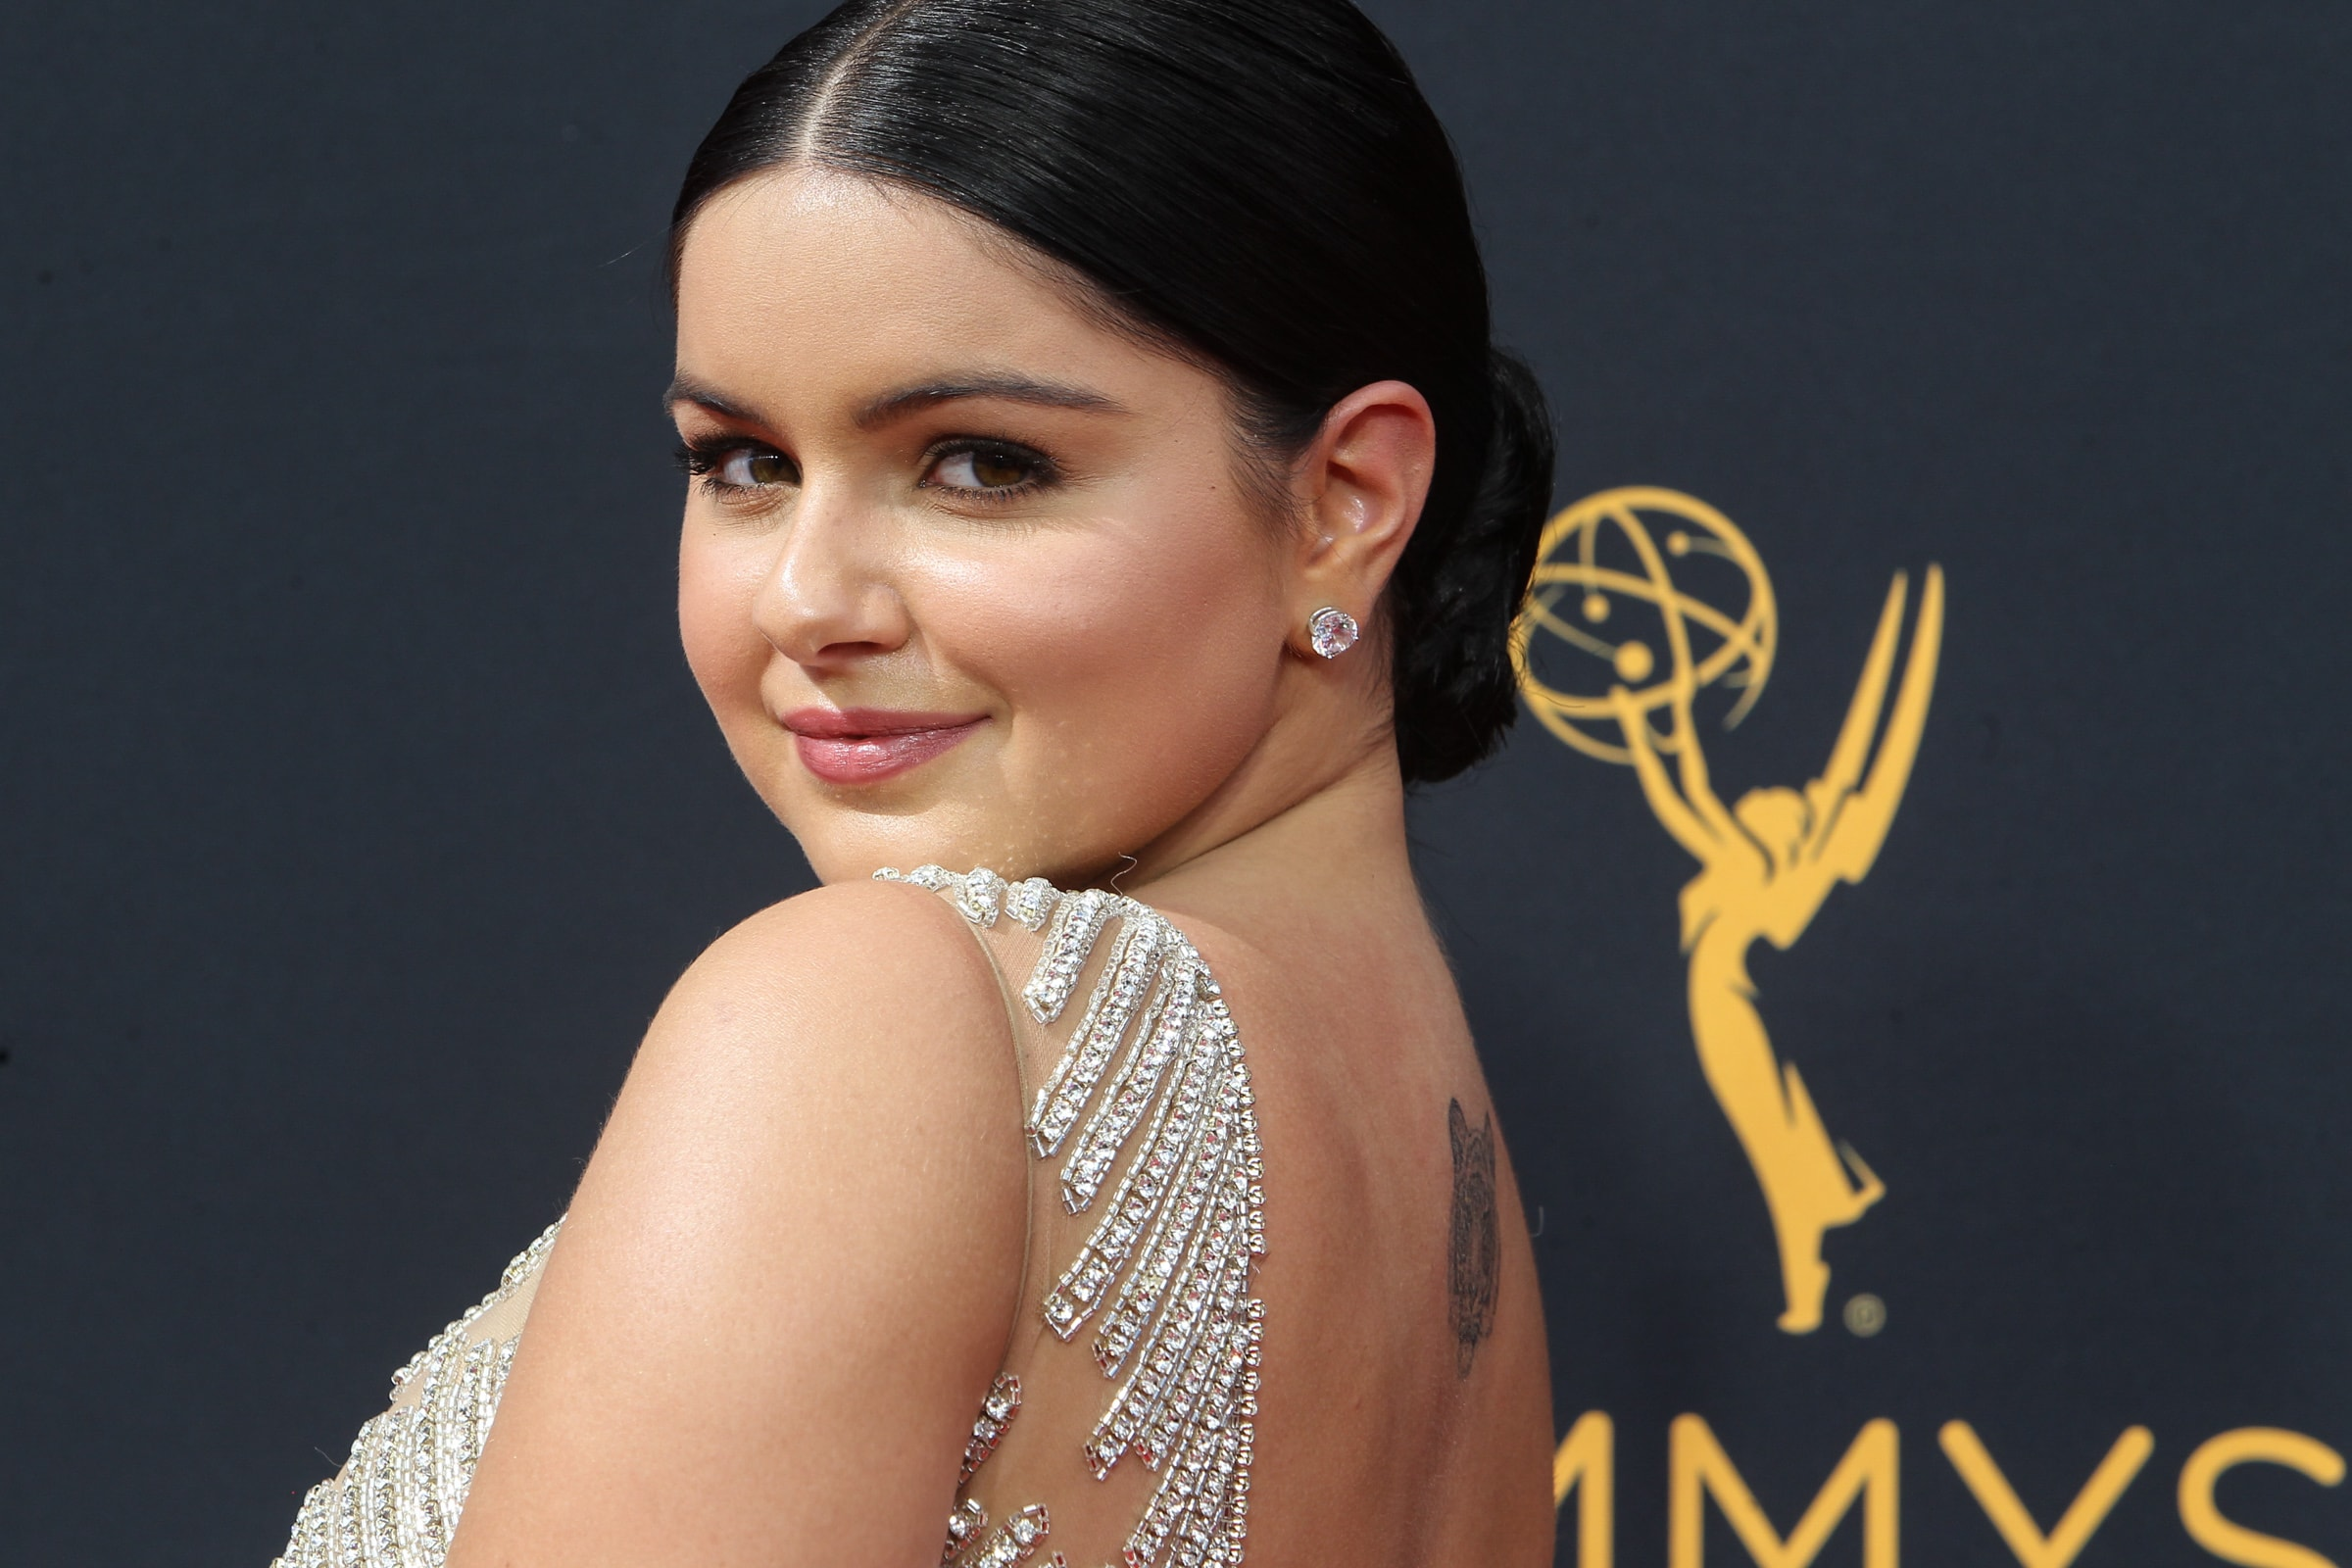 Ariel Winter certainly knows how to mix her wear-anything attitude with a little old Hollywood fashion. Here's a round up of some of her most polarizing red carpet looks. (Photo: WENN)